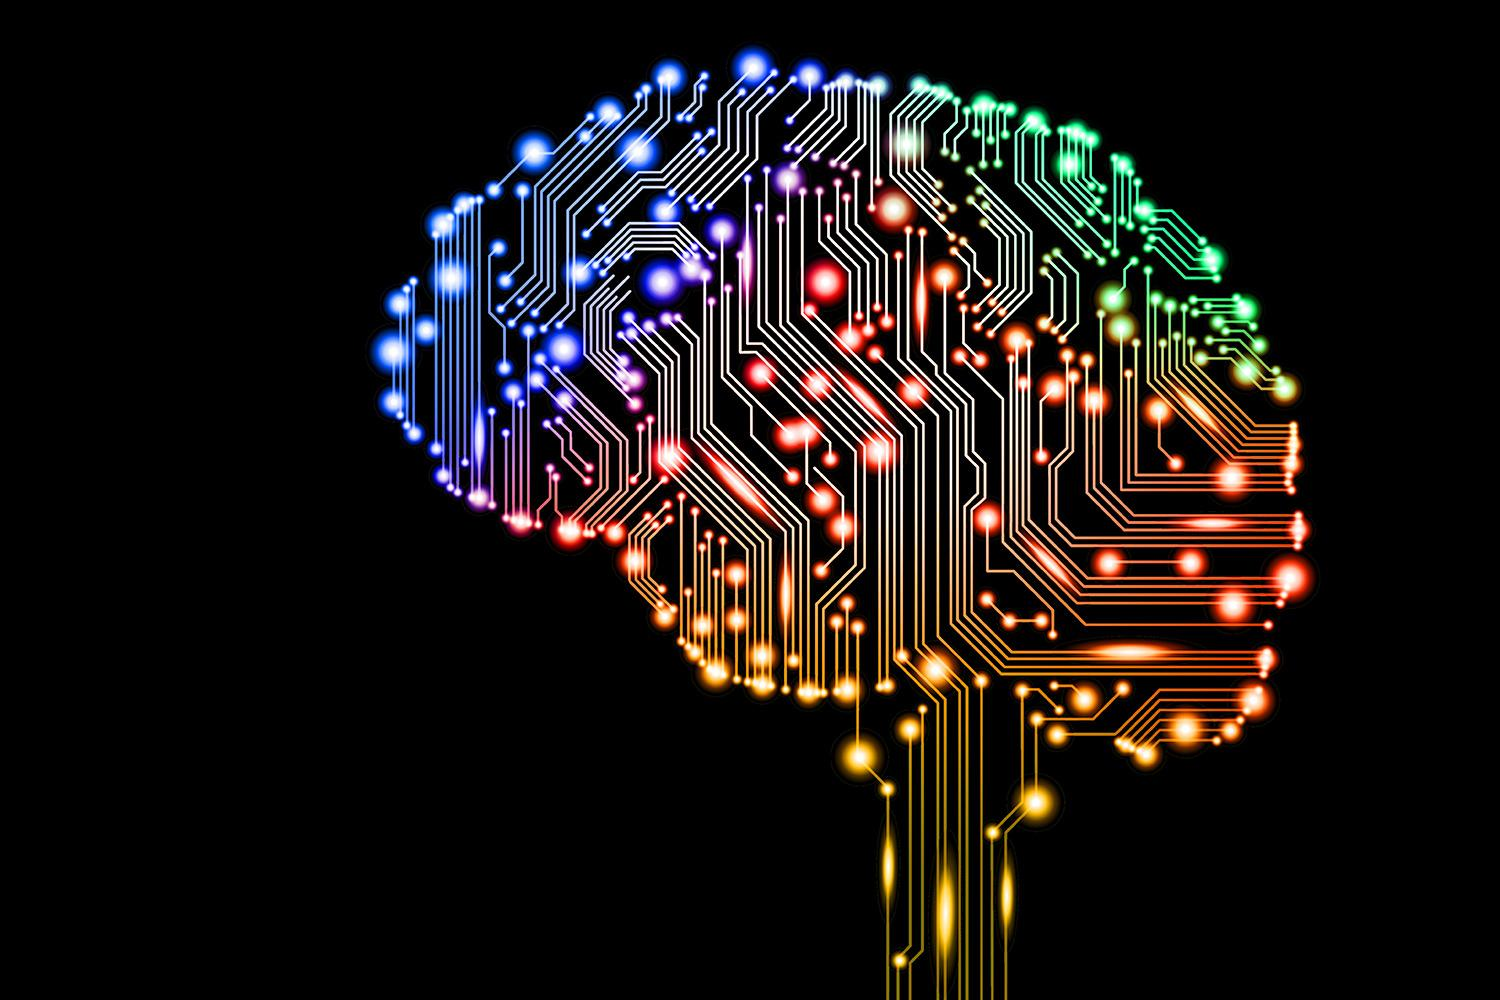 How Artificial Intelligence Improves the Way Companies Communicate